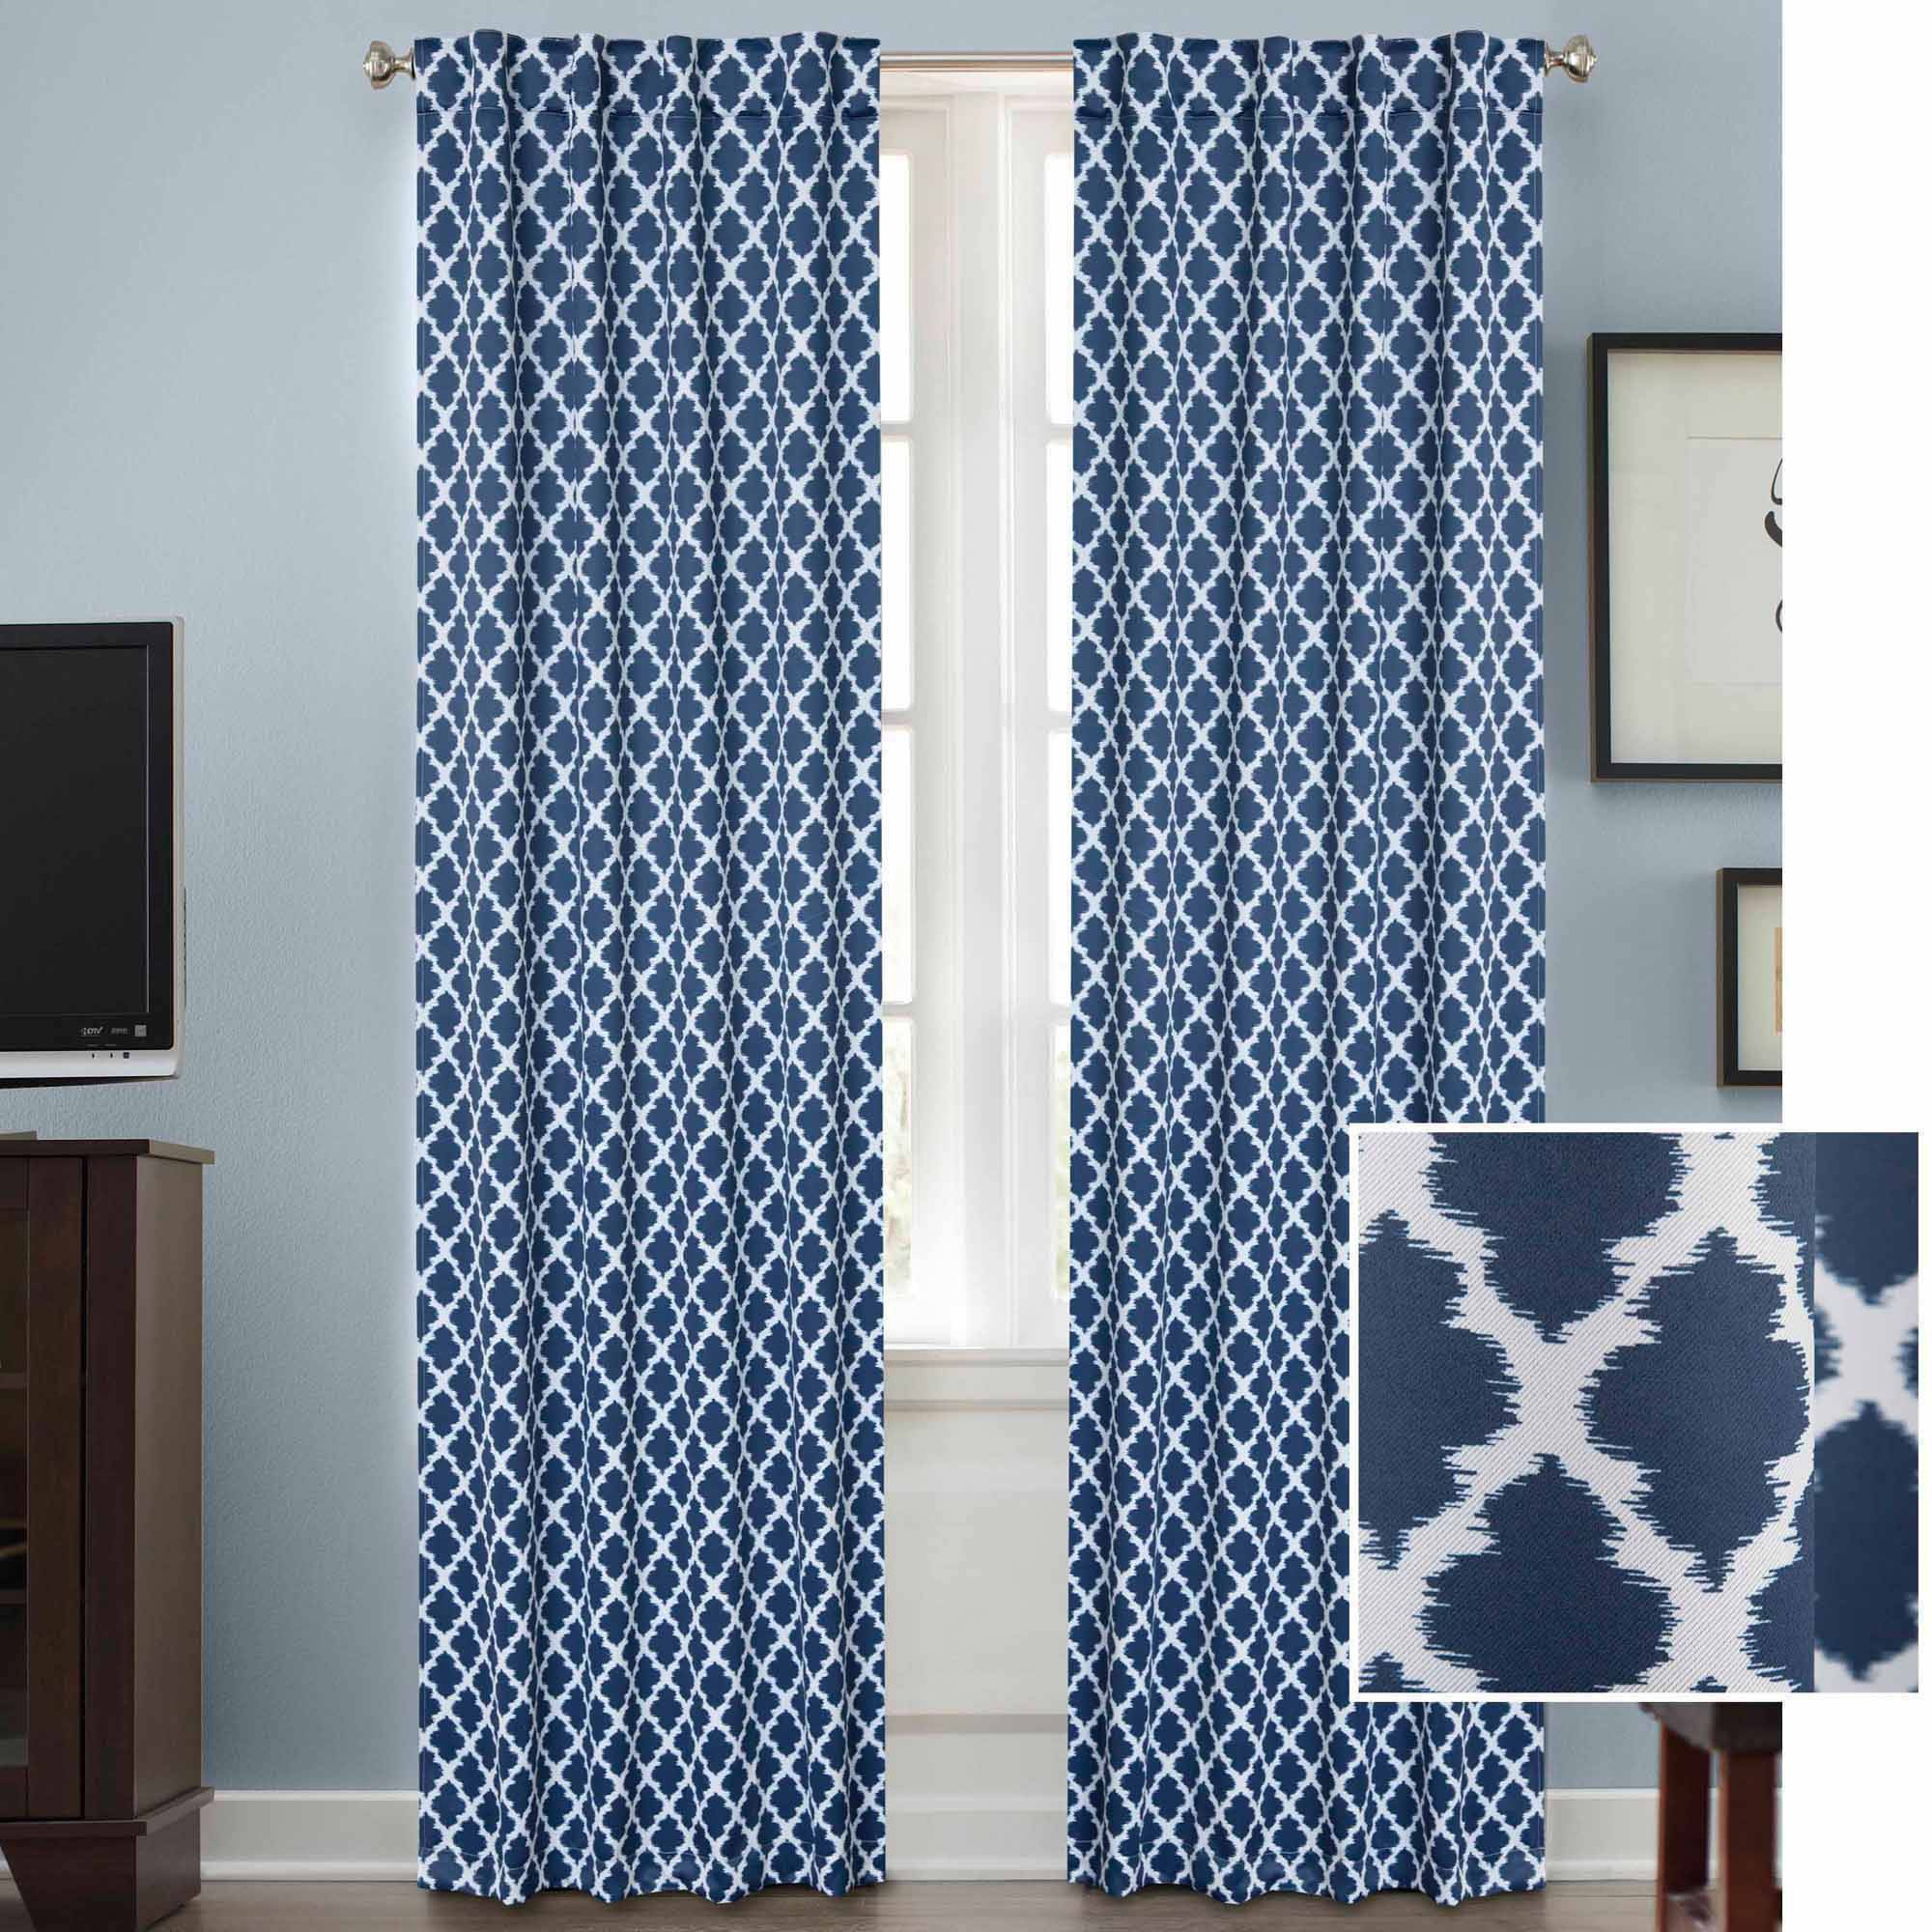 Curtains For Sale At Walmart Better Homes Gardens Tangier Room Darkening Curtain Panel Rod Pocket